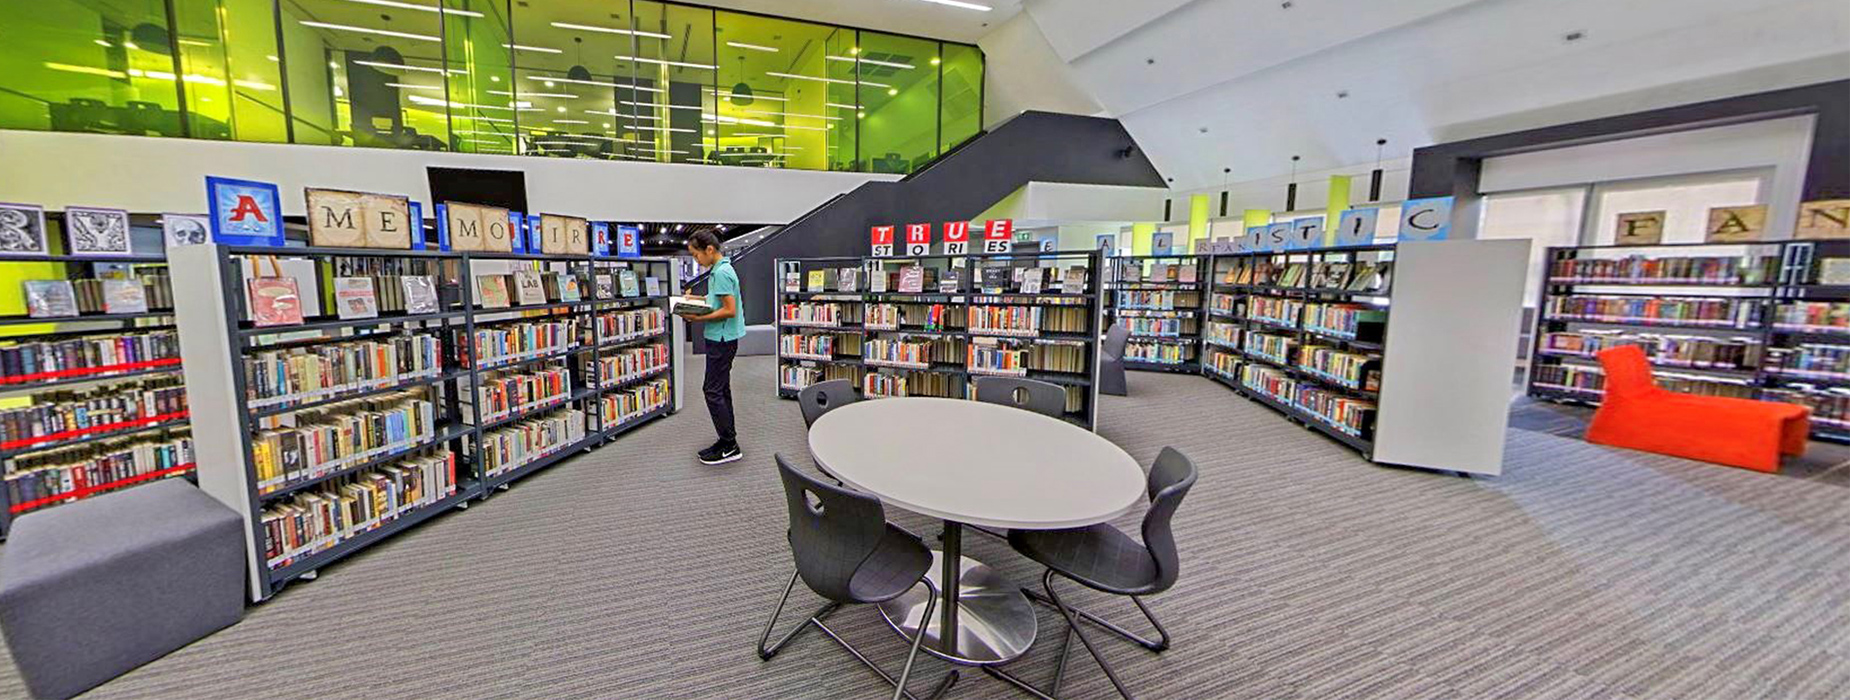 An image for International libraries